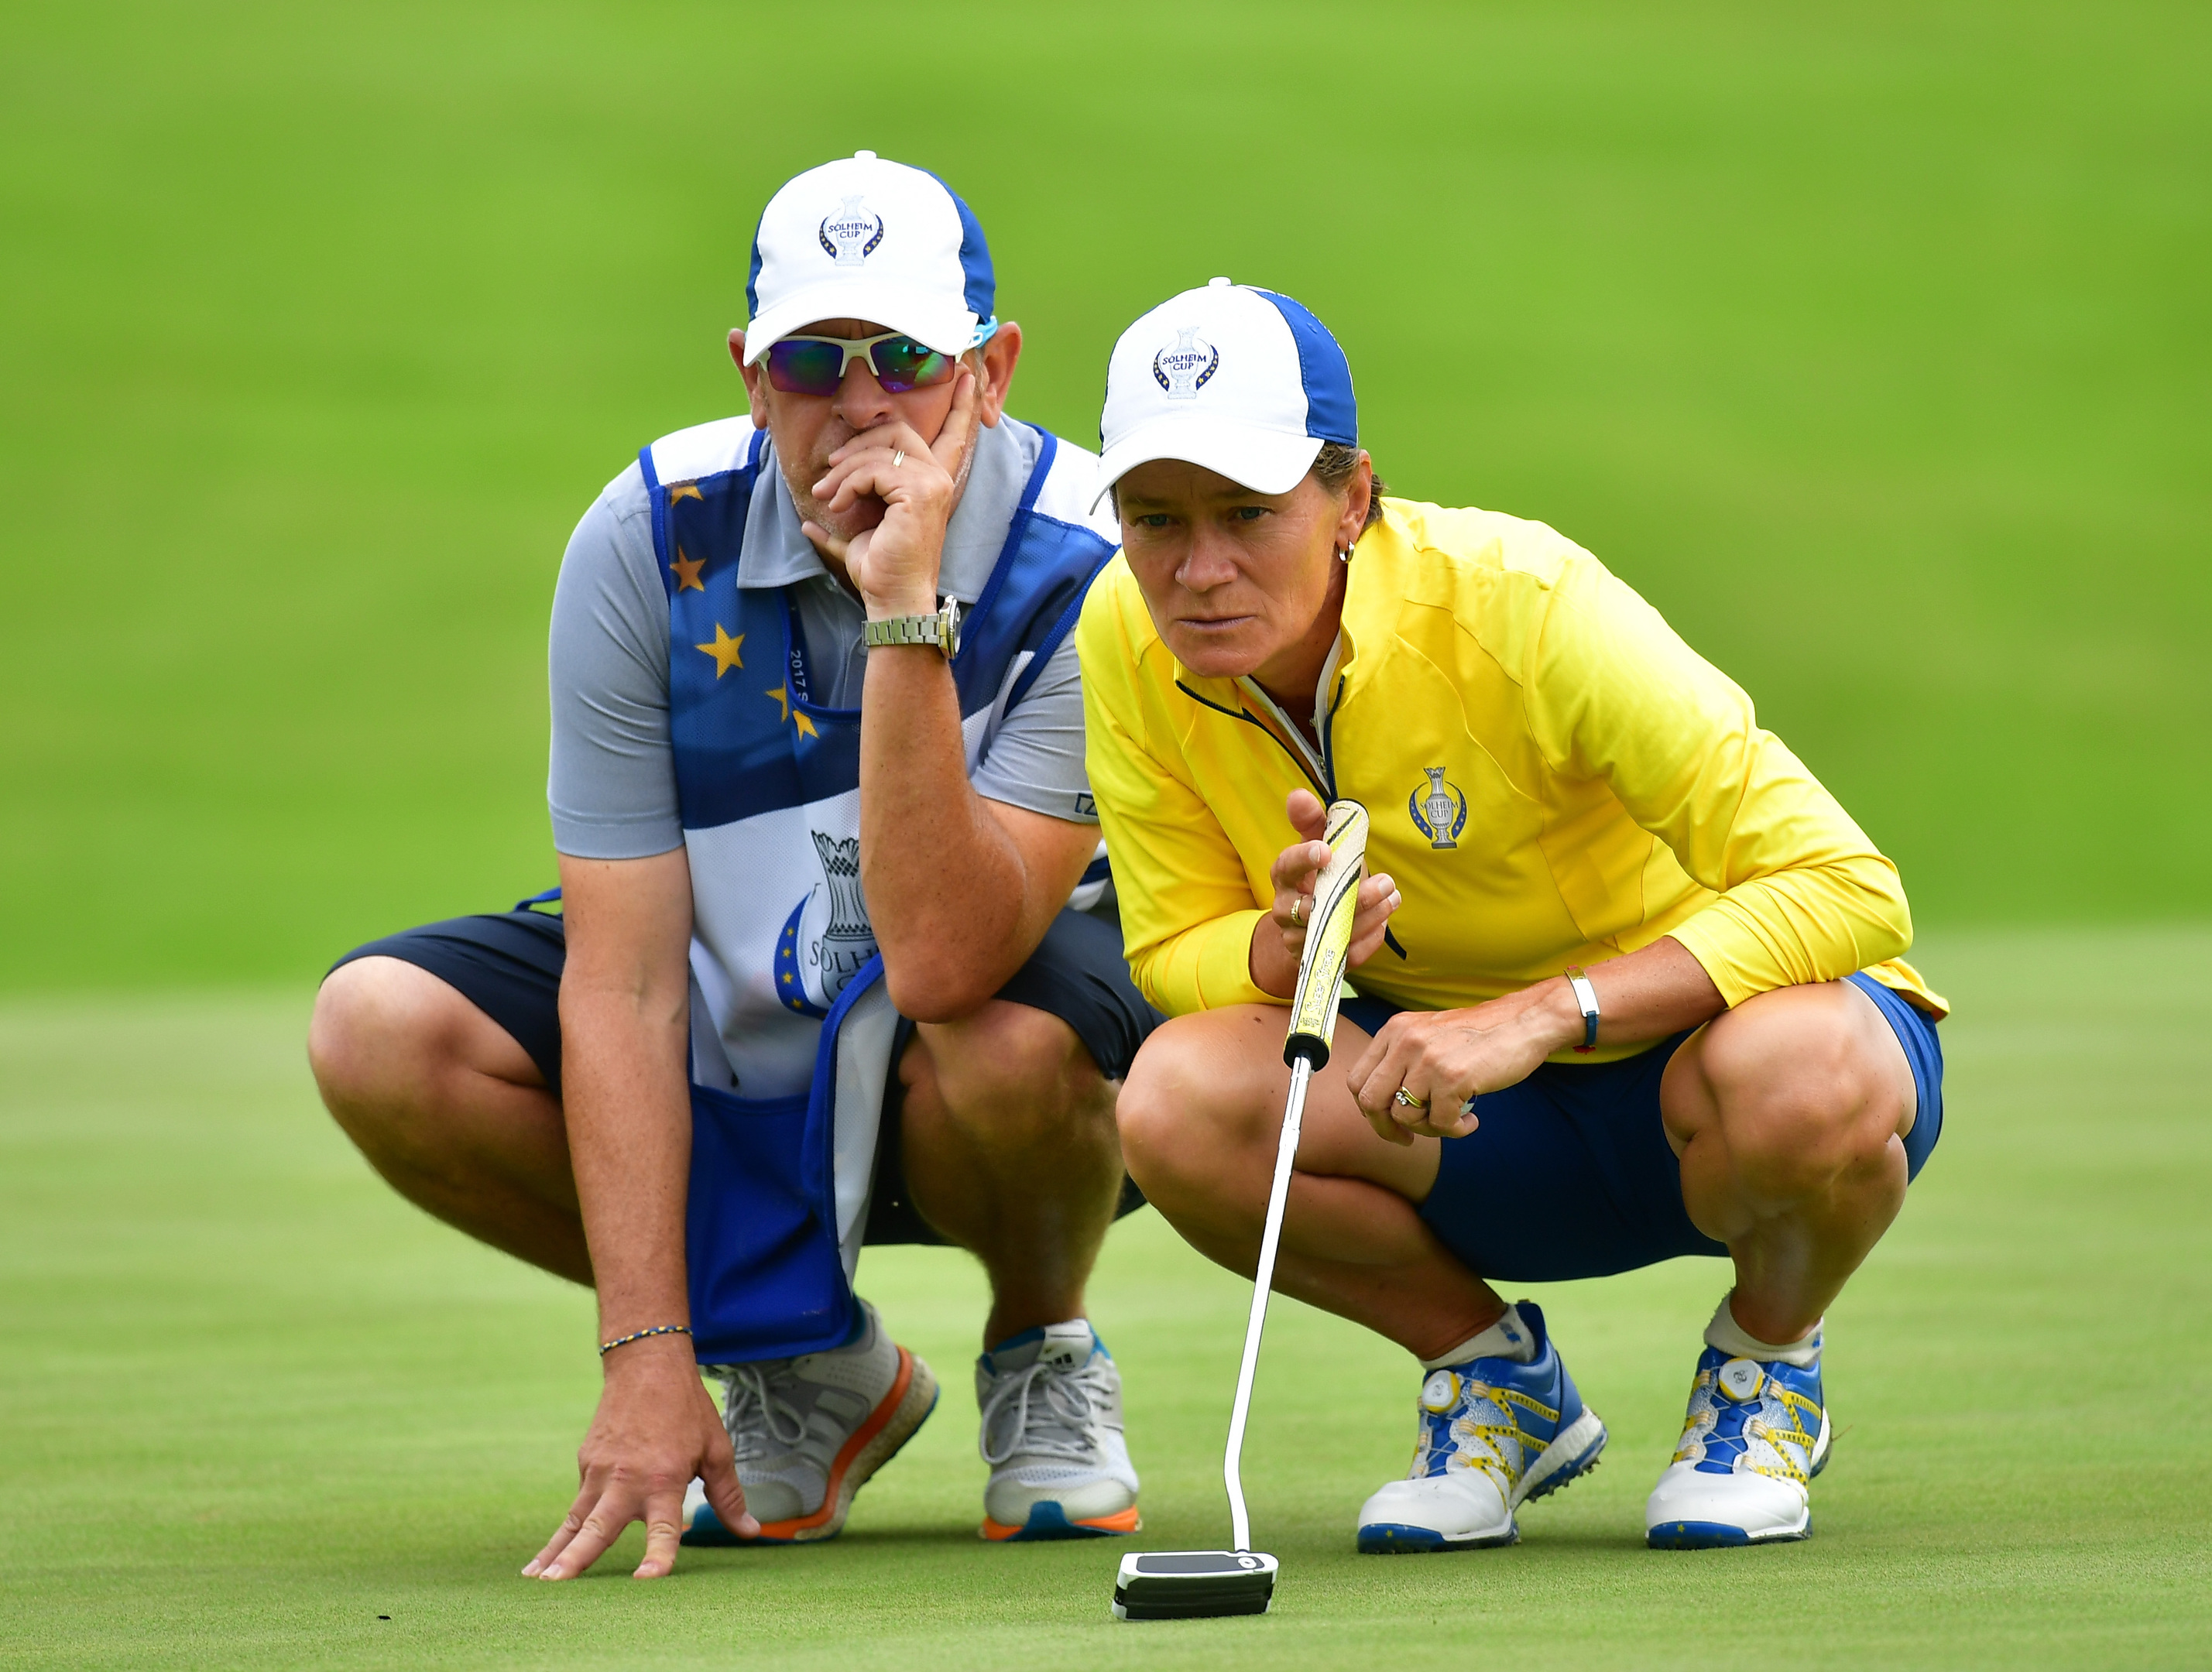 Catriona Matthew of Team Europe lines up a putt with caddie Mike Patterson during the second day morning foursomes matches of The Solheim Cup.